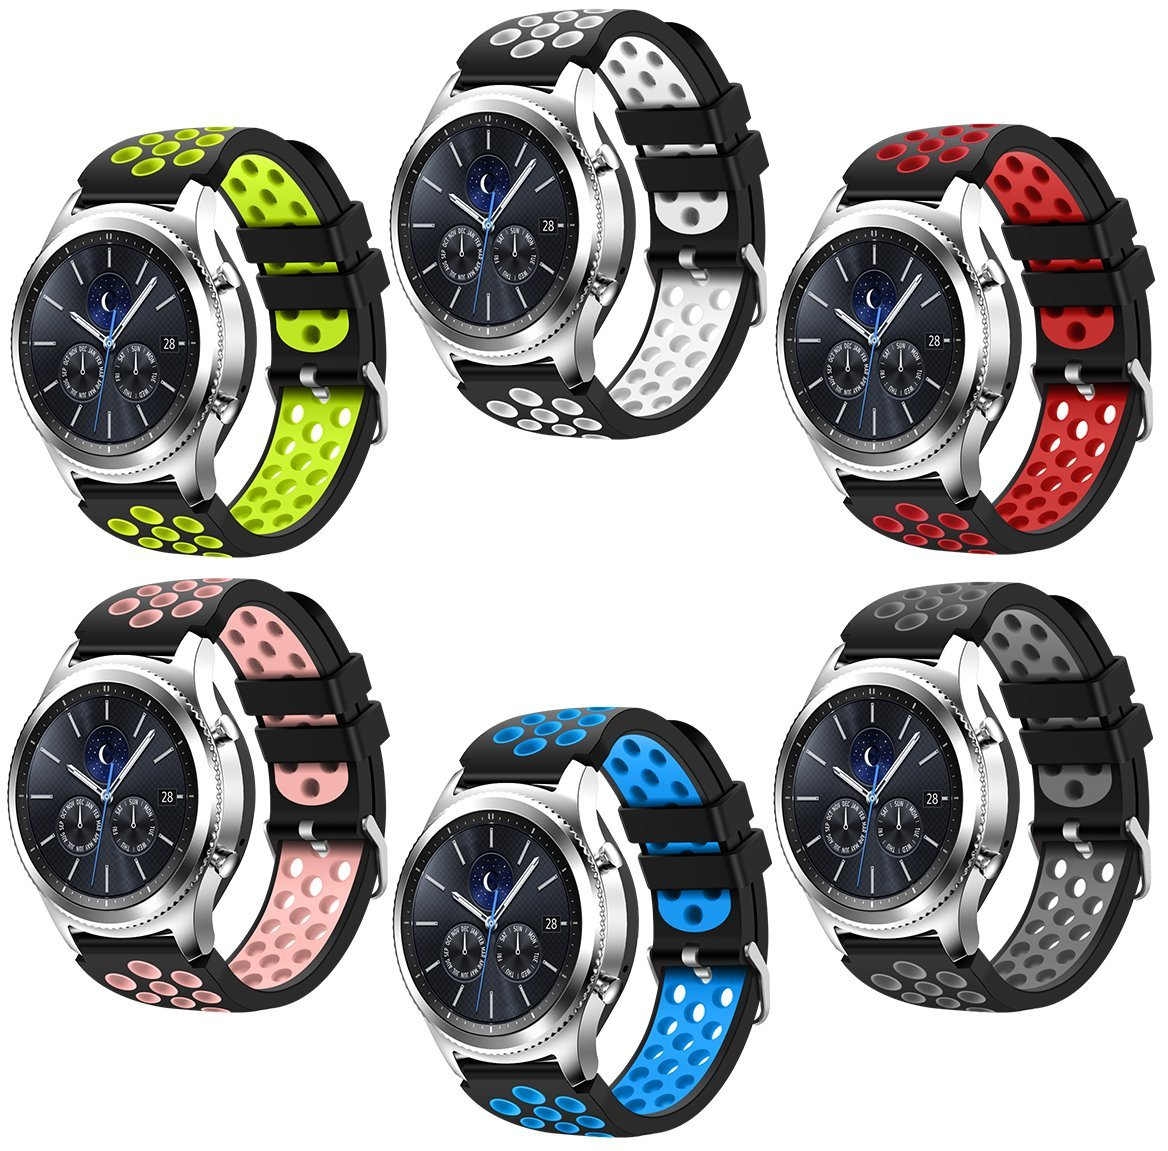 For Samsung Gear S3 Frontier and Classic Watch,CreateGreat Soft Replacement Breathable Sport Bands with Air Holes for Samsung Gear S3 Smart Watch Band